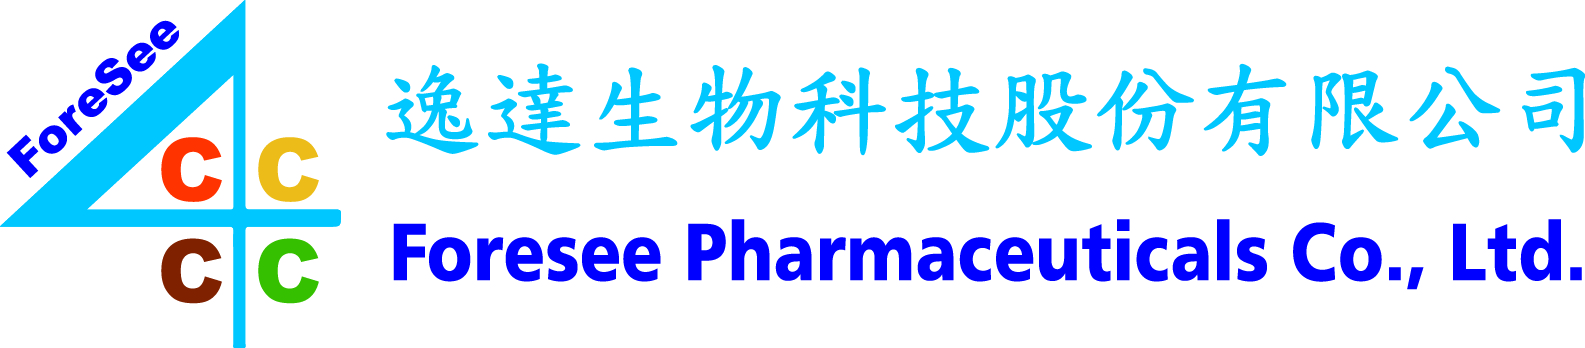 Foresee Pharmaceuticals, Co., Ltd